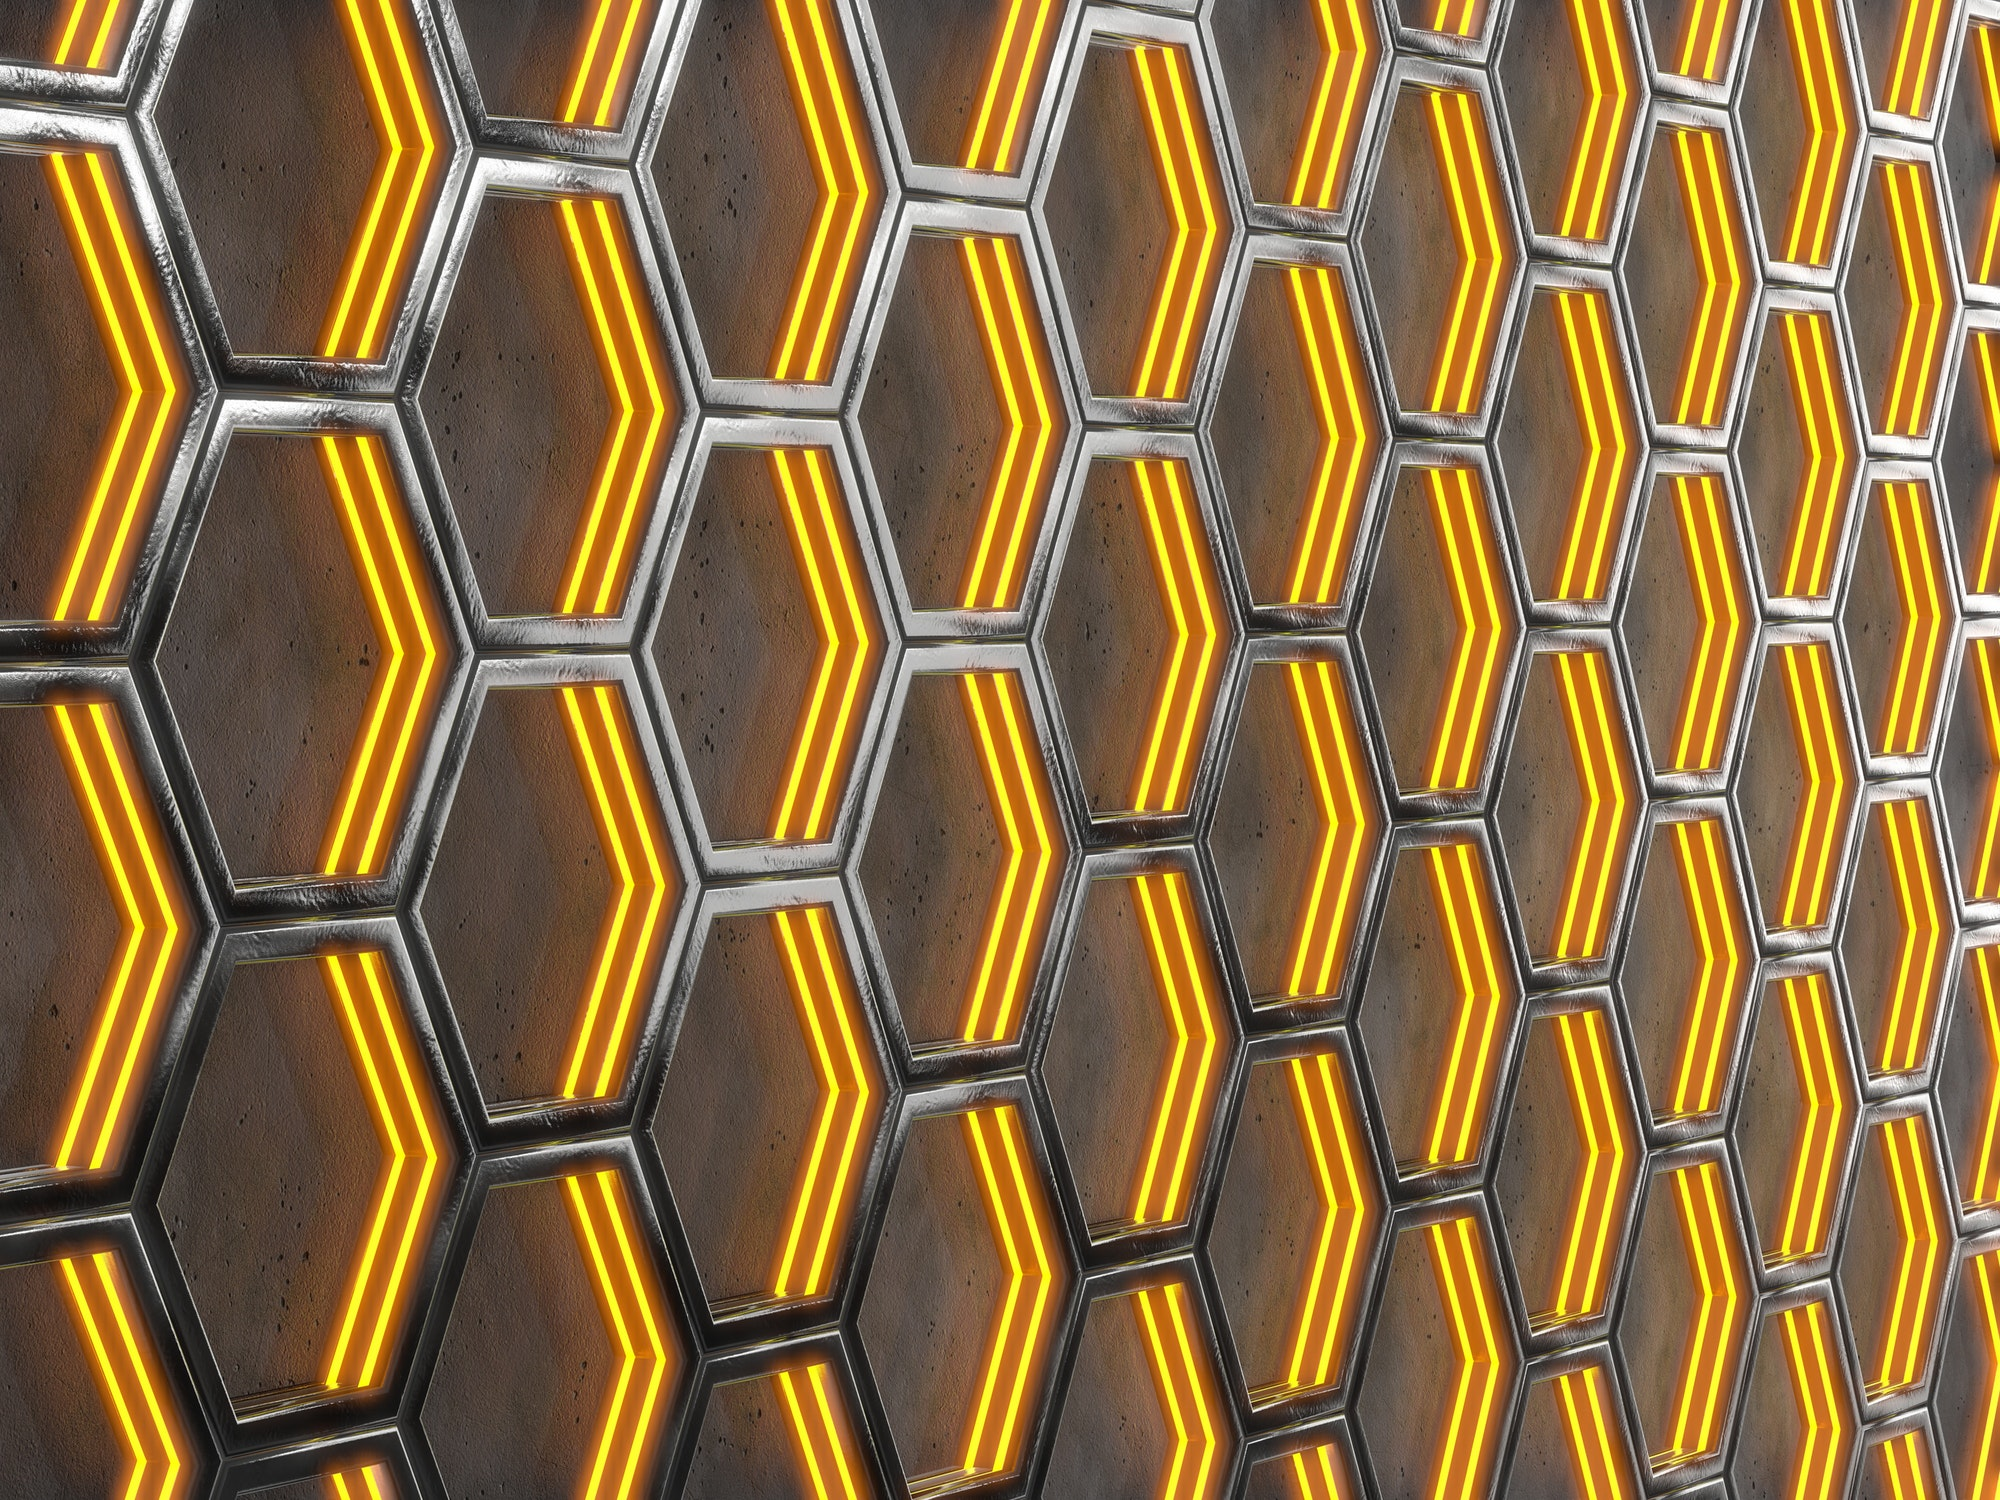 Glowing hexagonal cells on a concrete background. Abstract background with geometric structure.